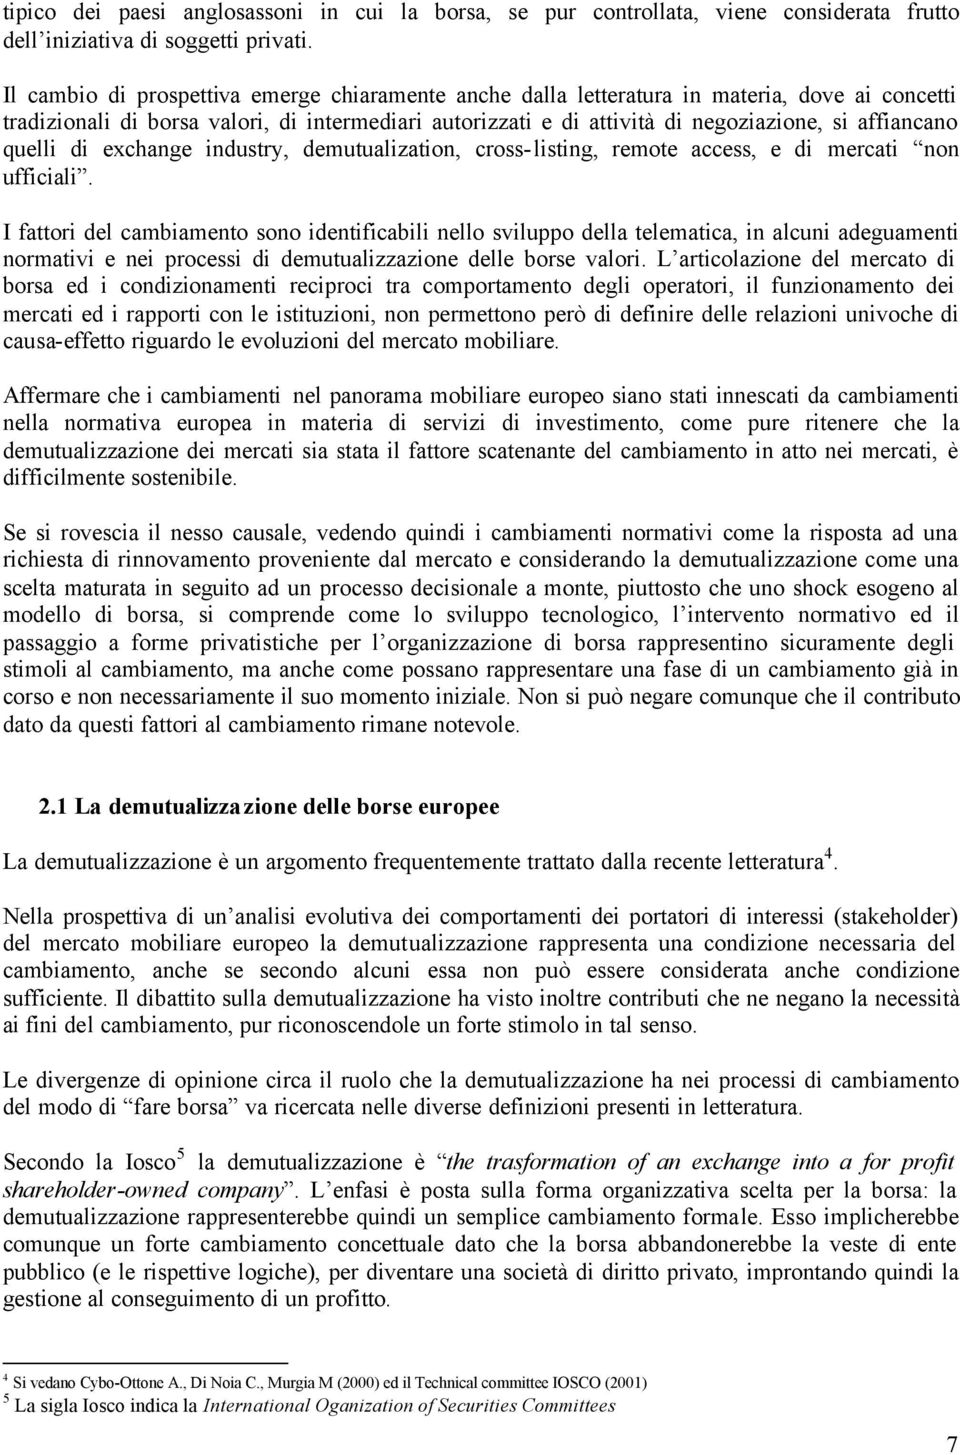 quelli di exchange industry, demutualization, cross-listing, remote access, e di mercati non ufficiali.